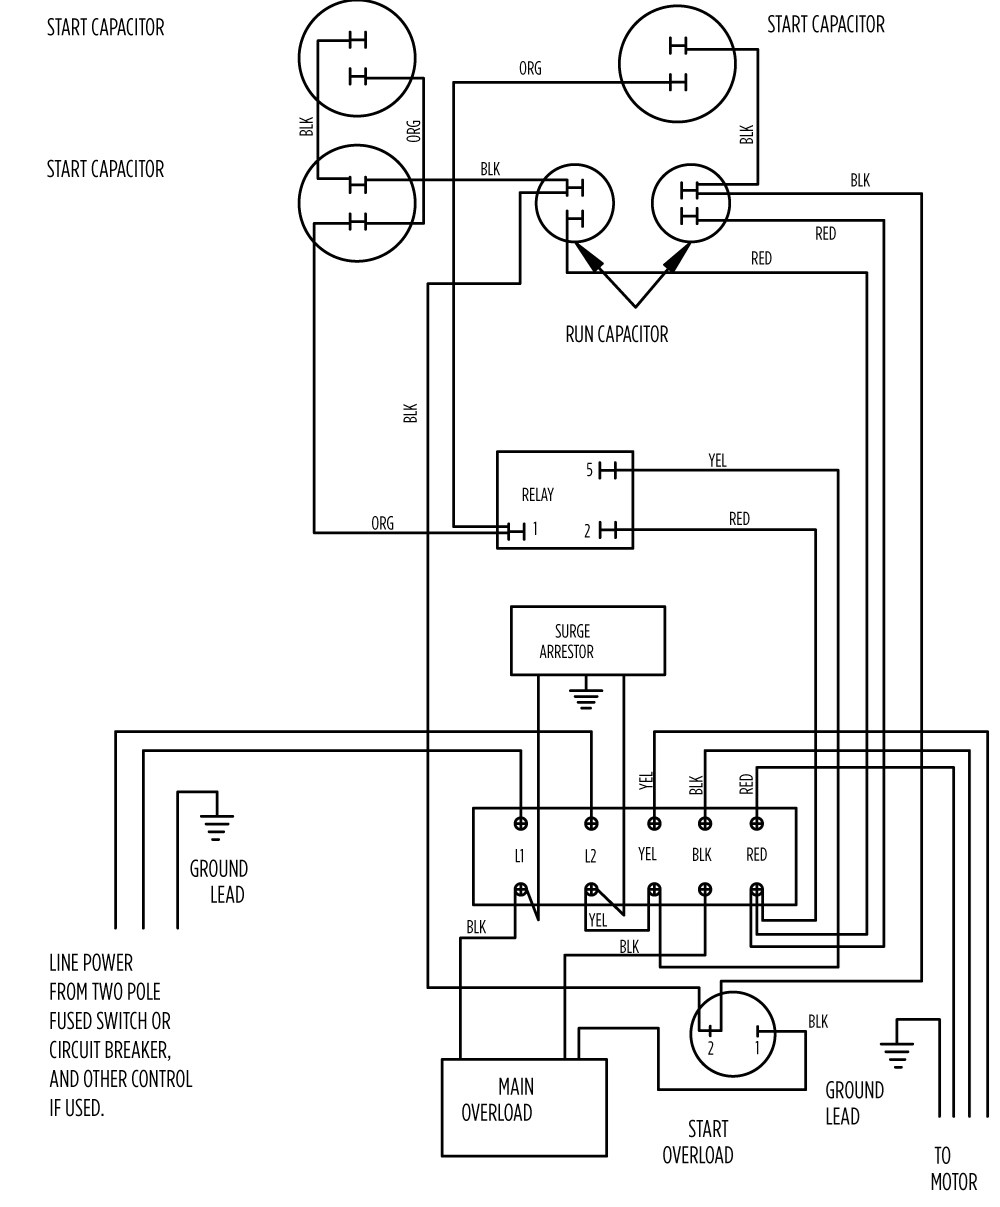 10 hp standard 282 202 9210 or 282 202 9230_aim gallery?format=jpg&quality=80 aim manual page 57 single phase motors and controls motor wiring diagram for electric motor at gsmx.co